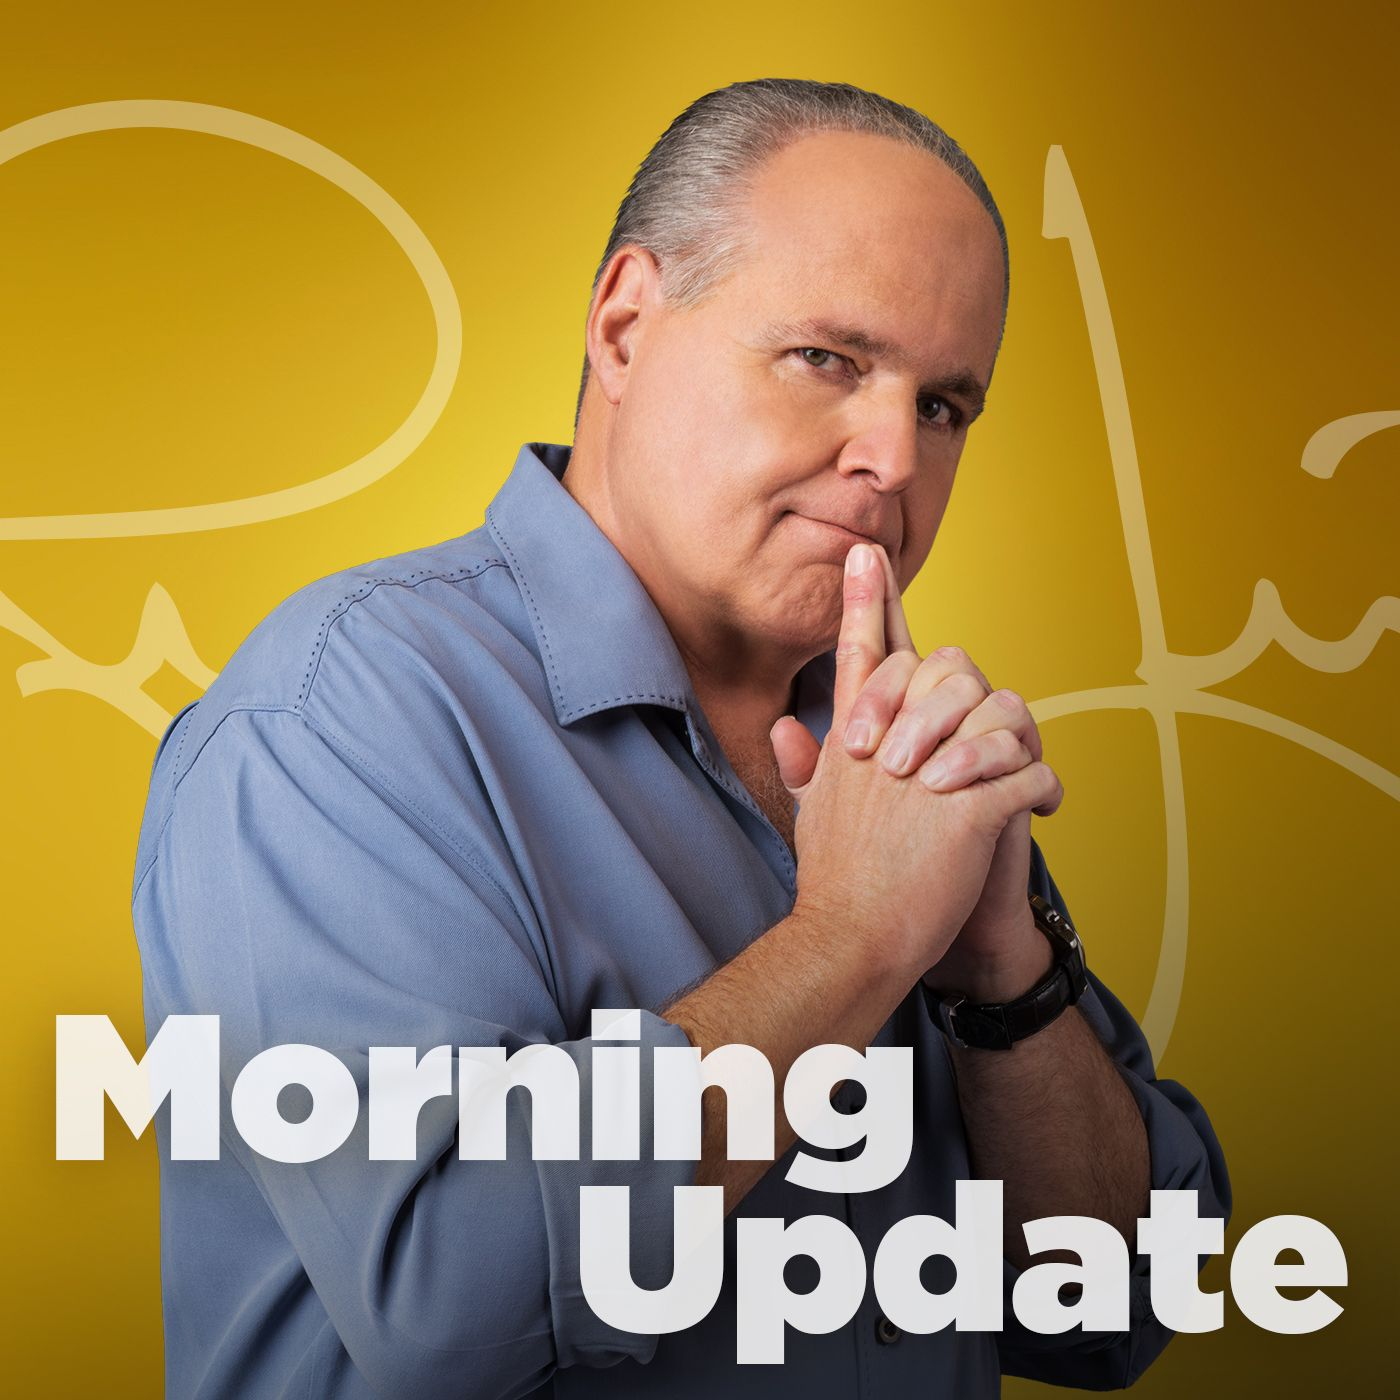 Rush Limbaugh Jun 16, 2020